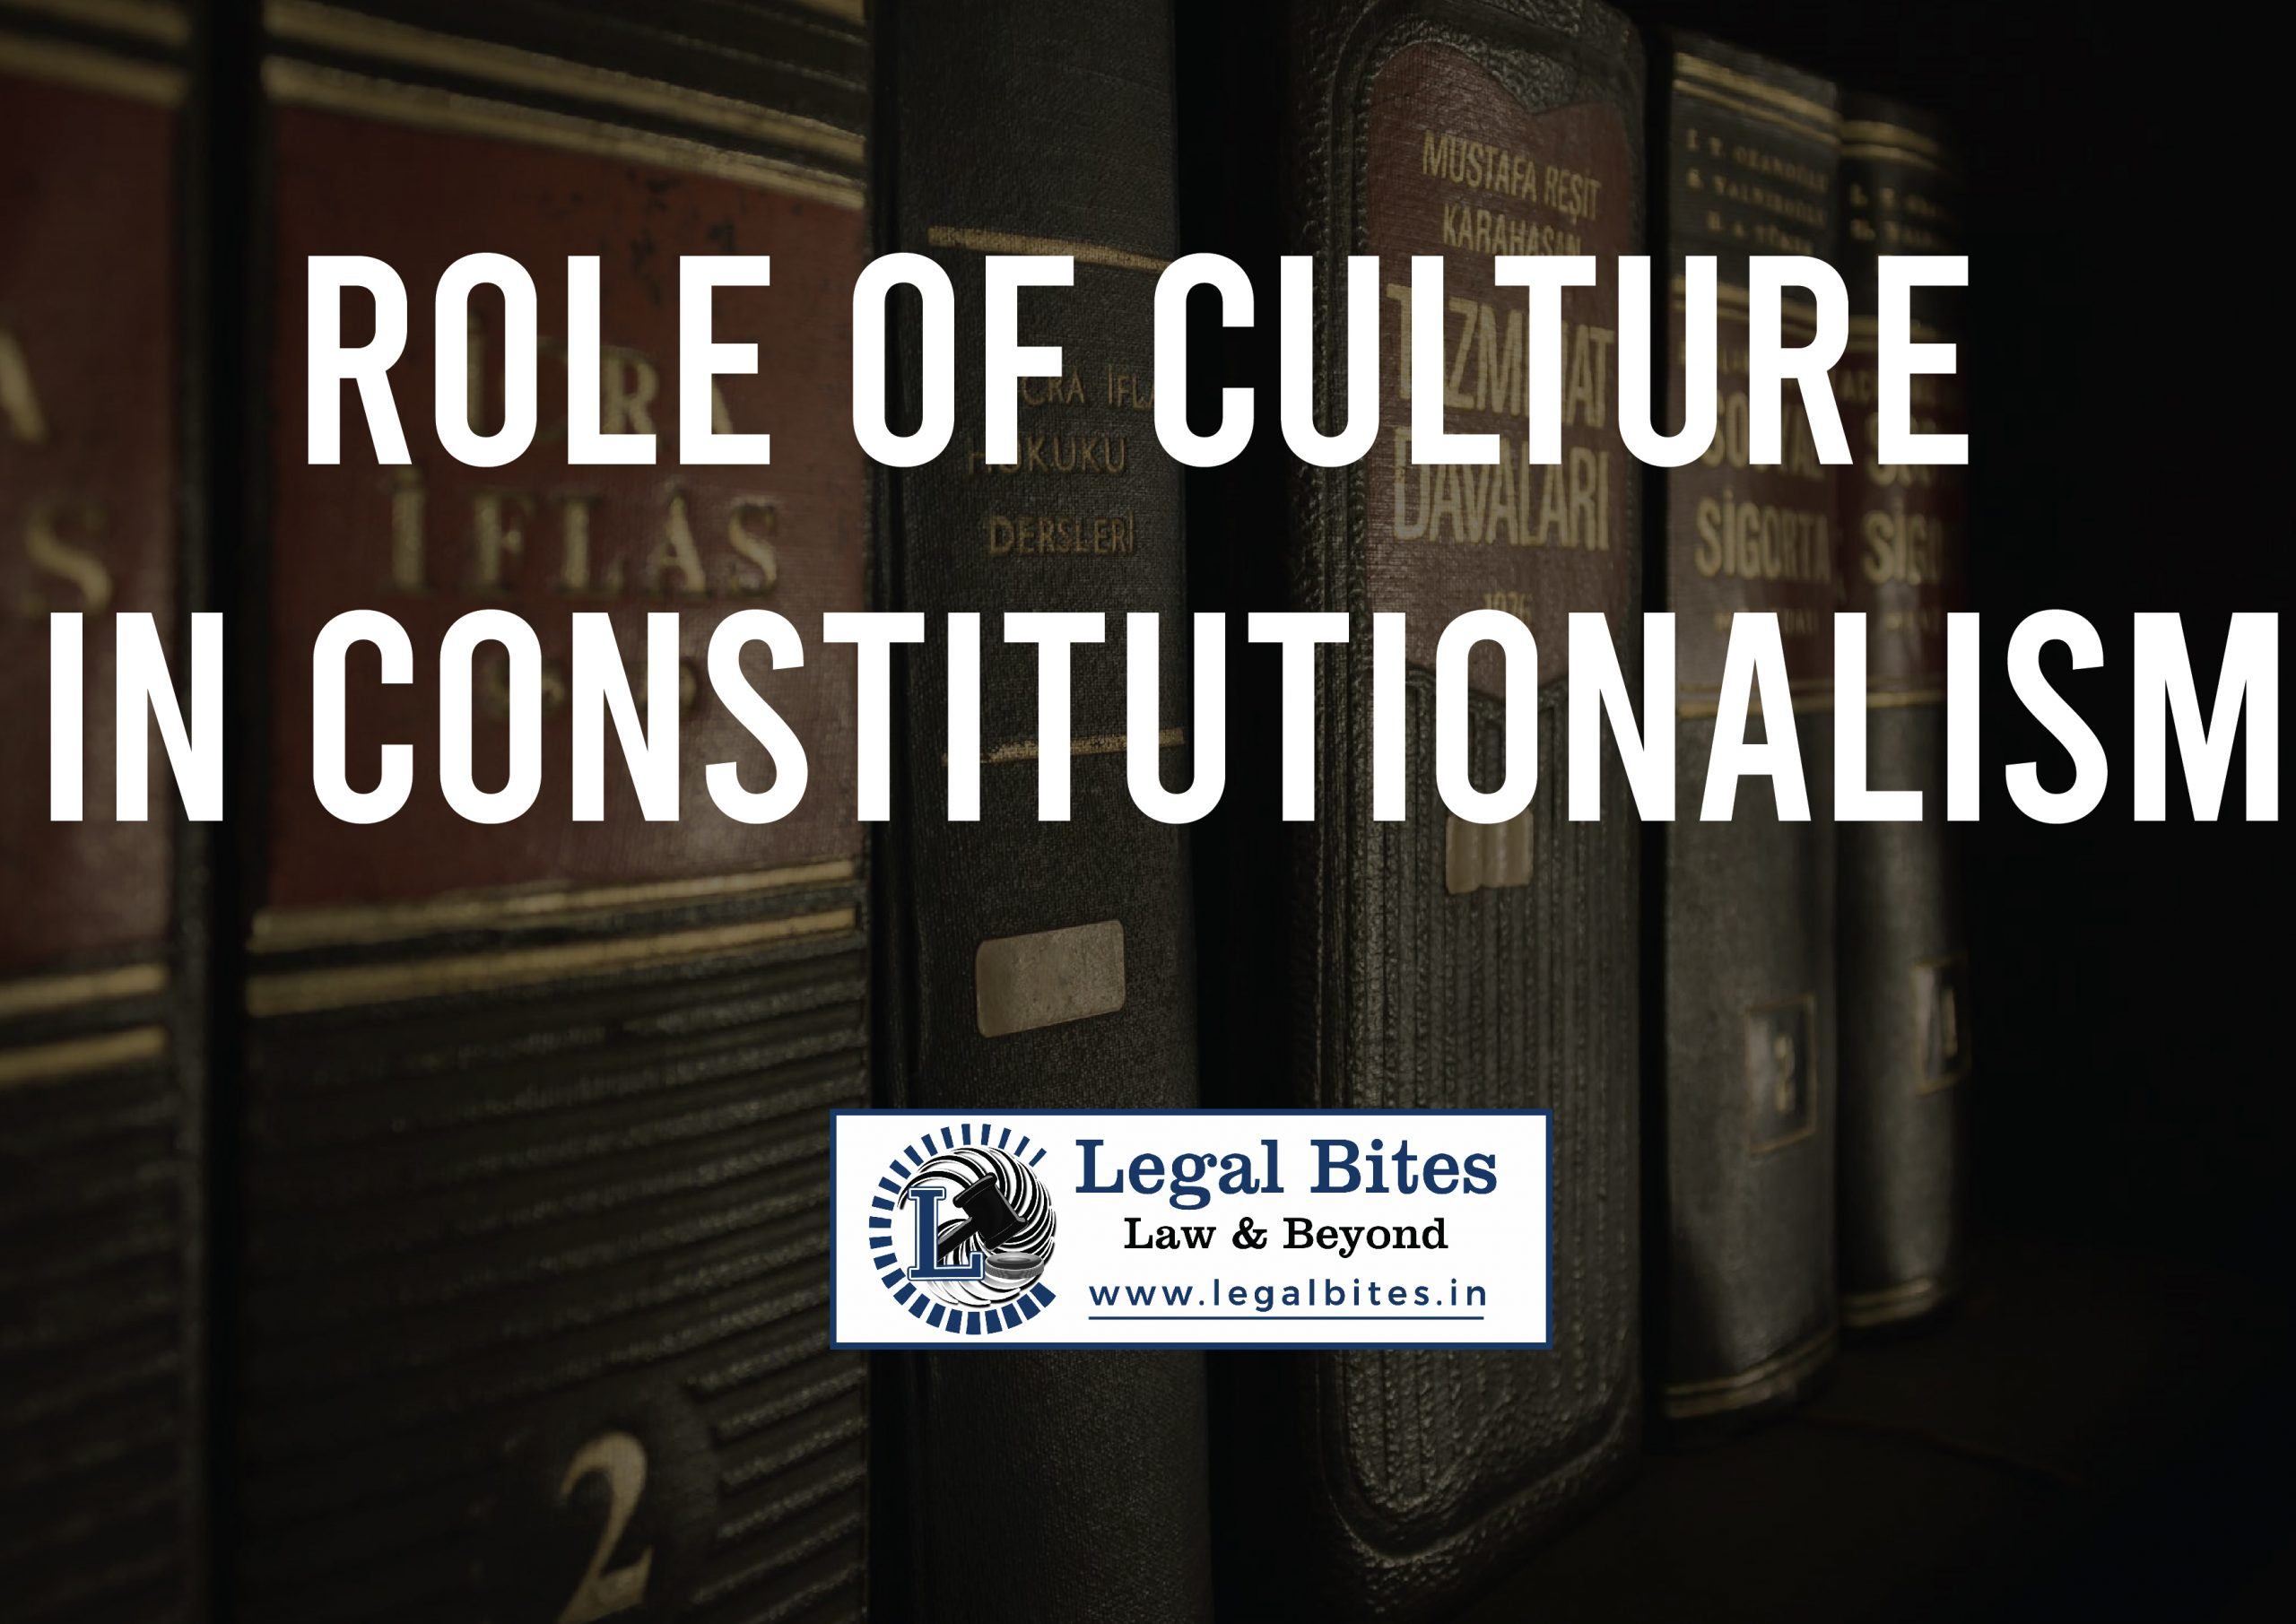 Role of Culture in Constitutionalism